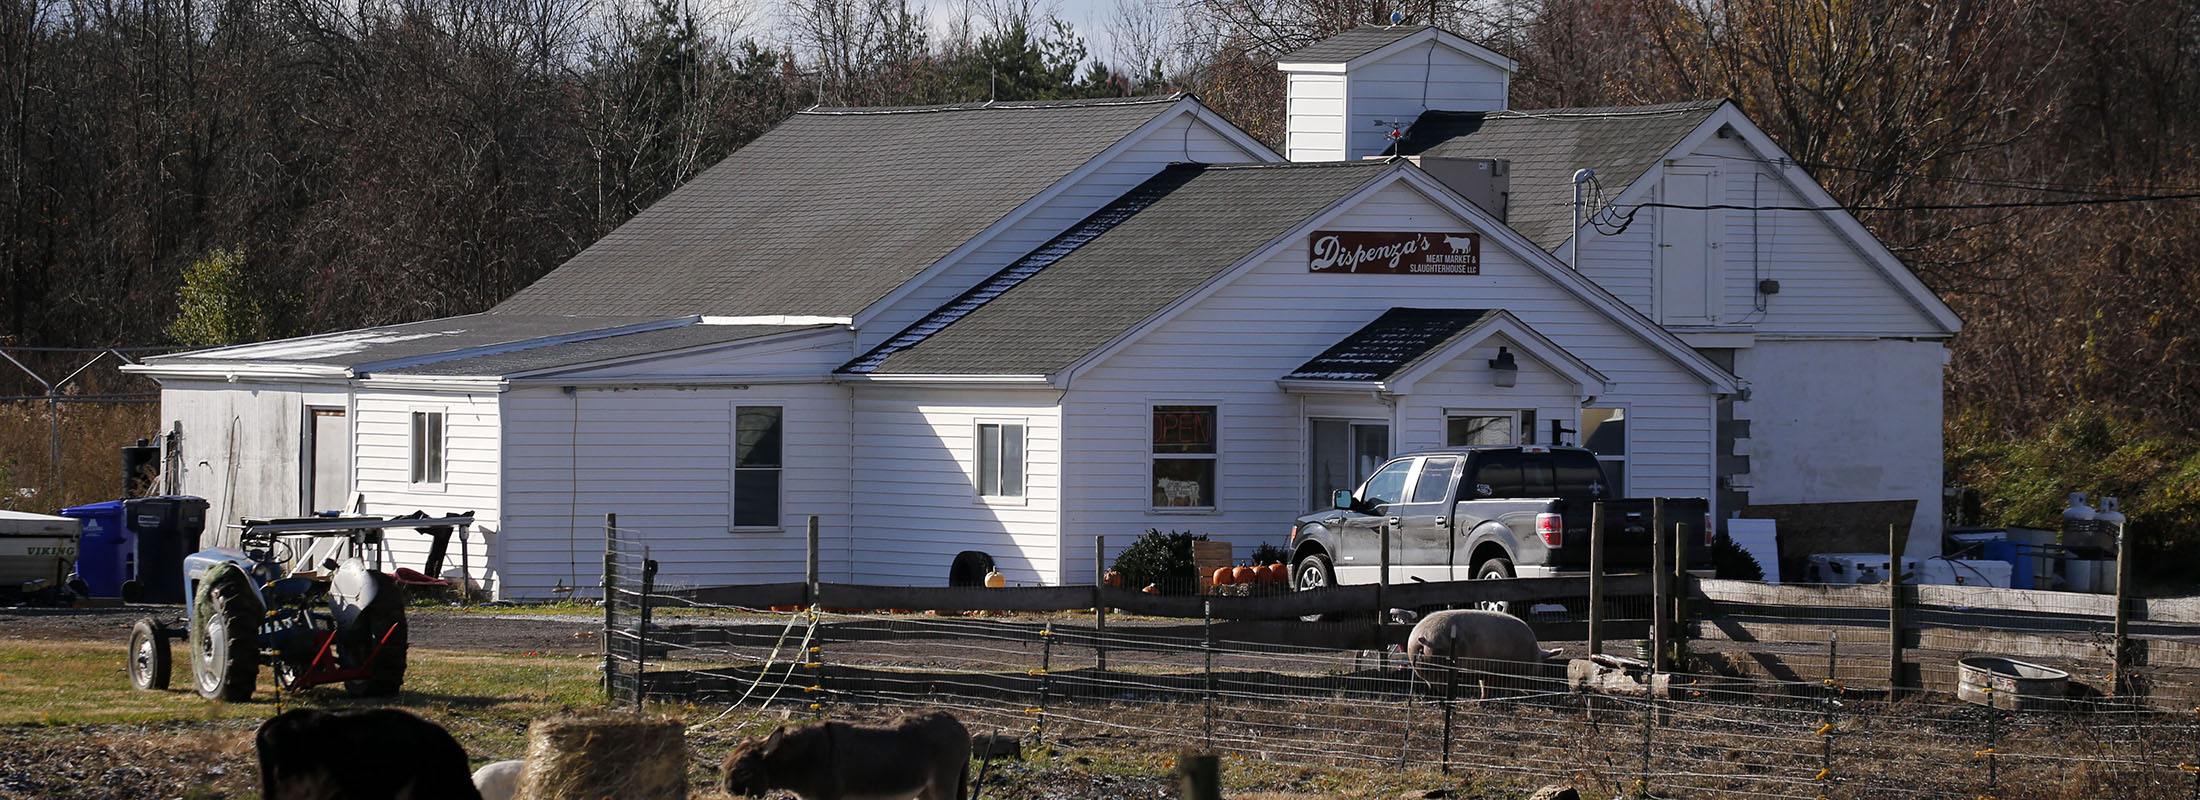 Dispenza's Meat Market on Ridge Road in Cambria, as seen in November. (Derek Gee/Buffalo News)